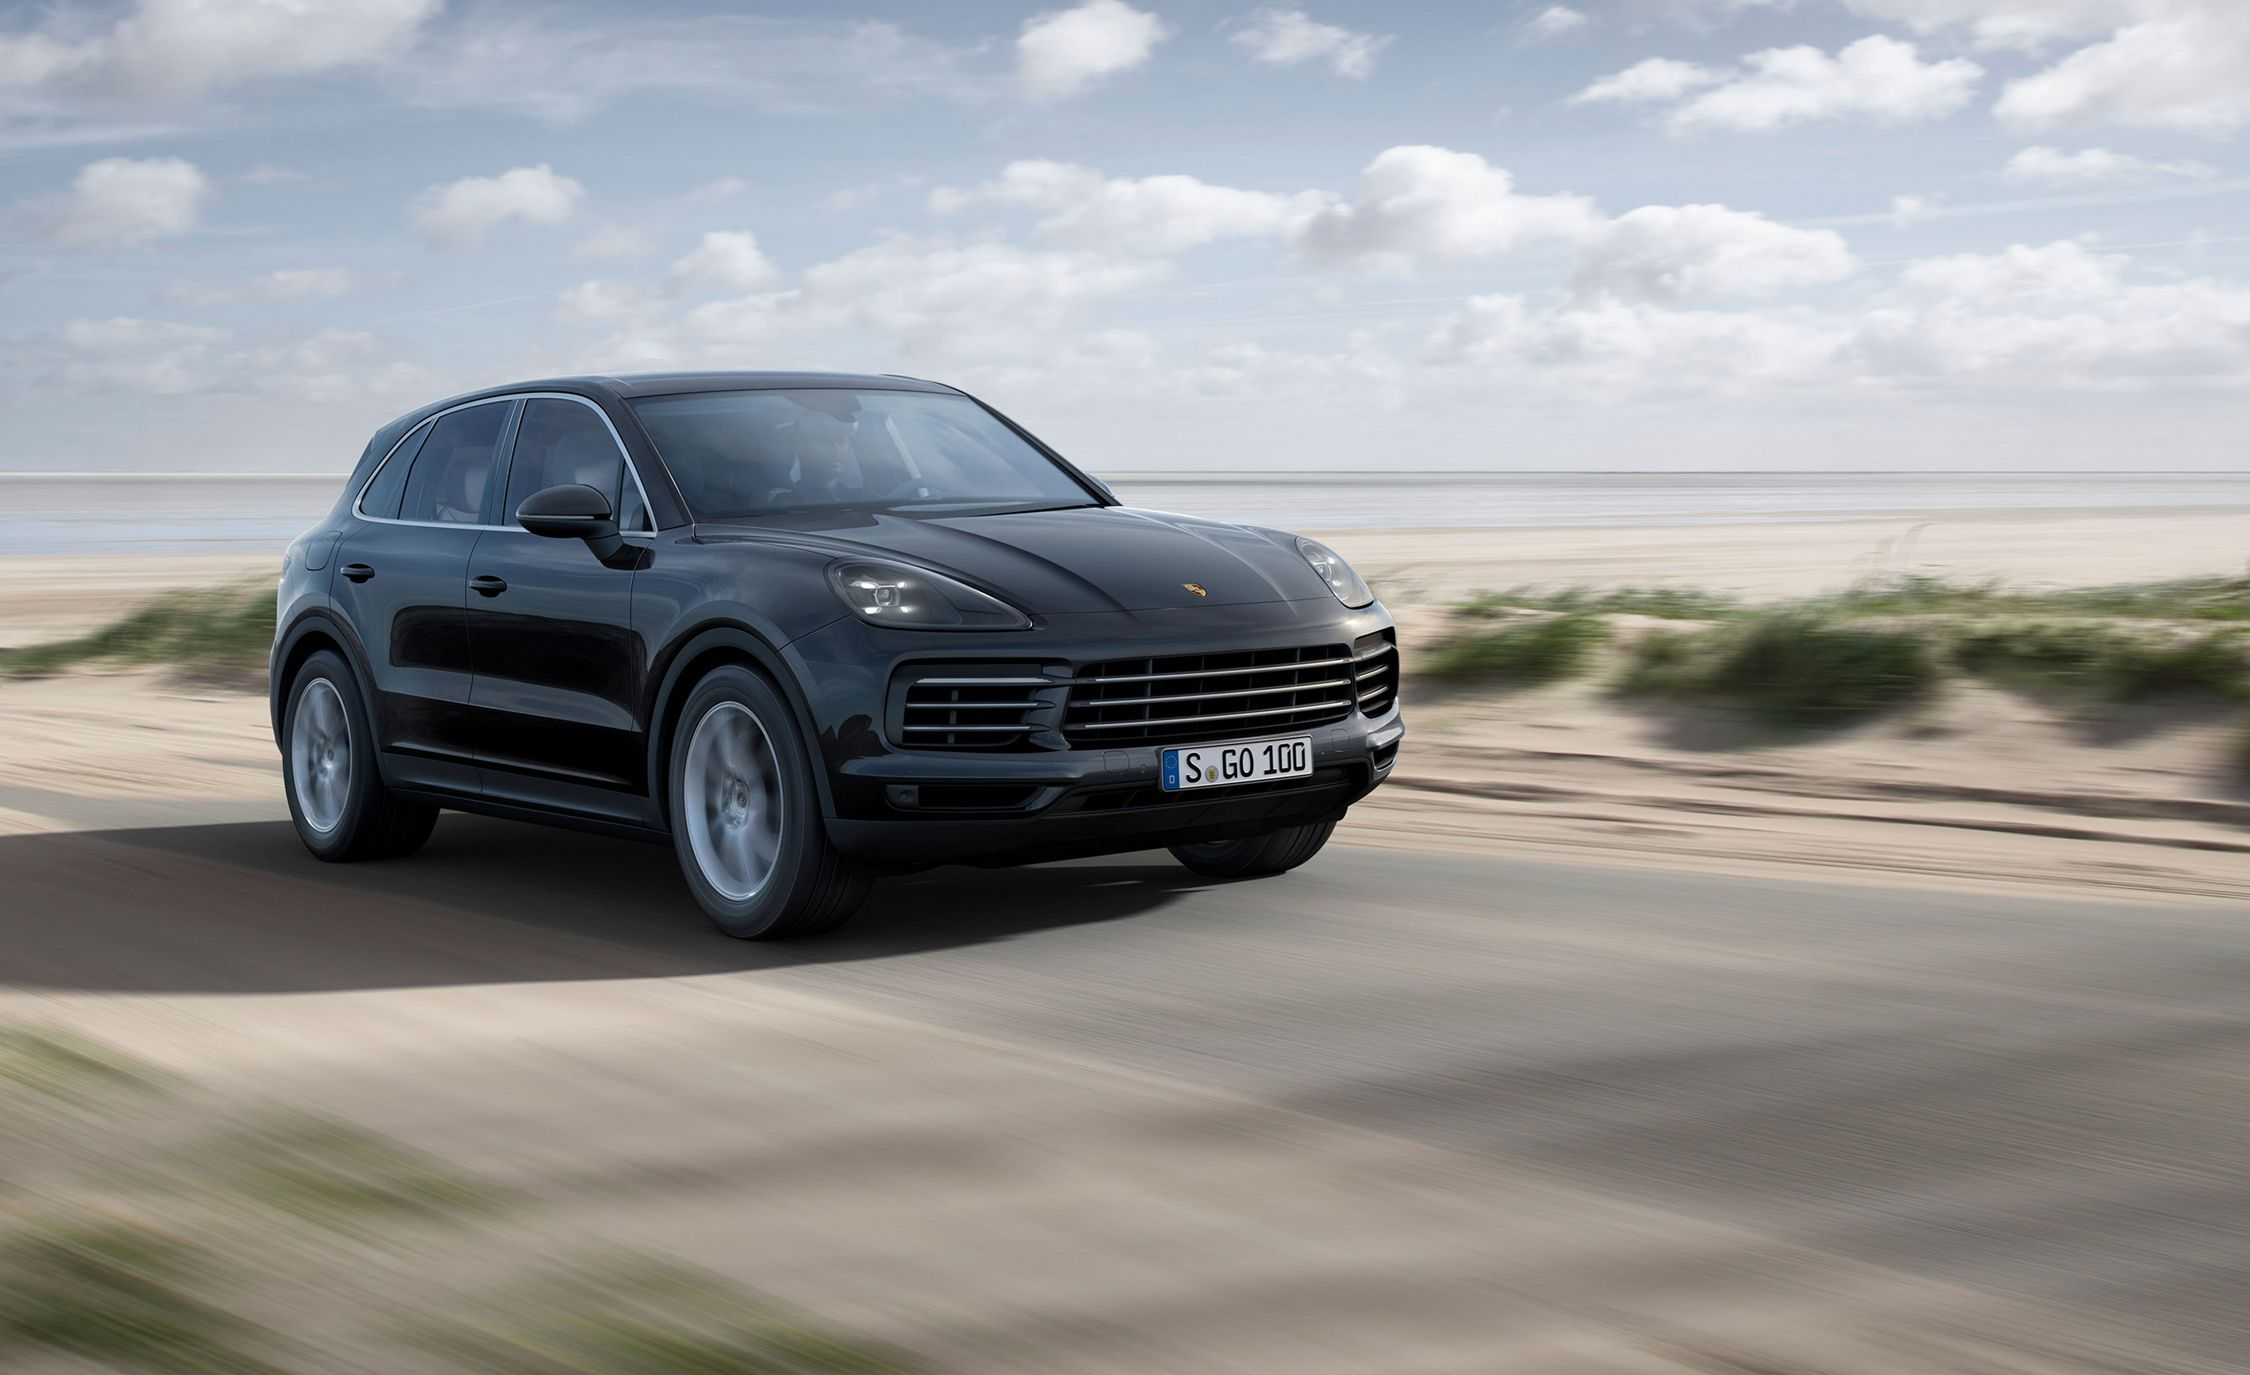 2019 Porsche Cayenne Revealed: The Porsche of SUVs, Take Three